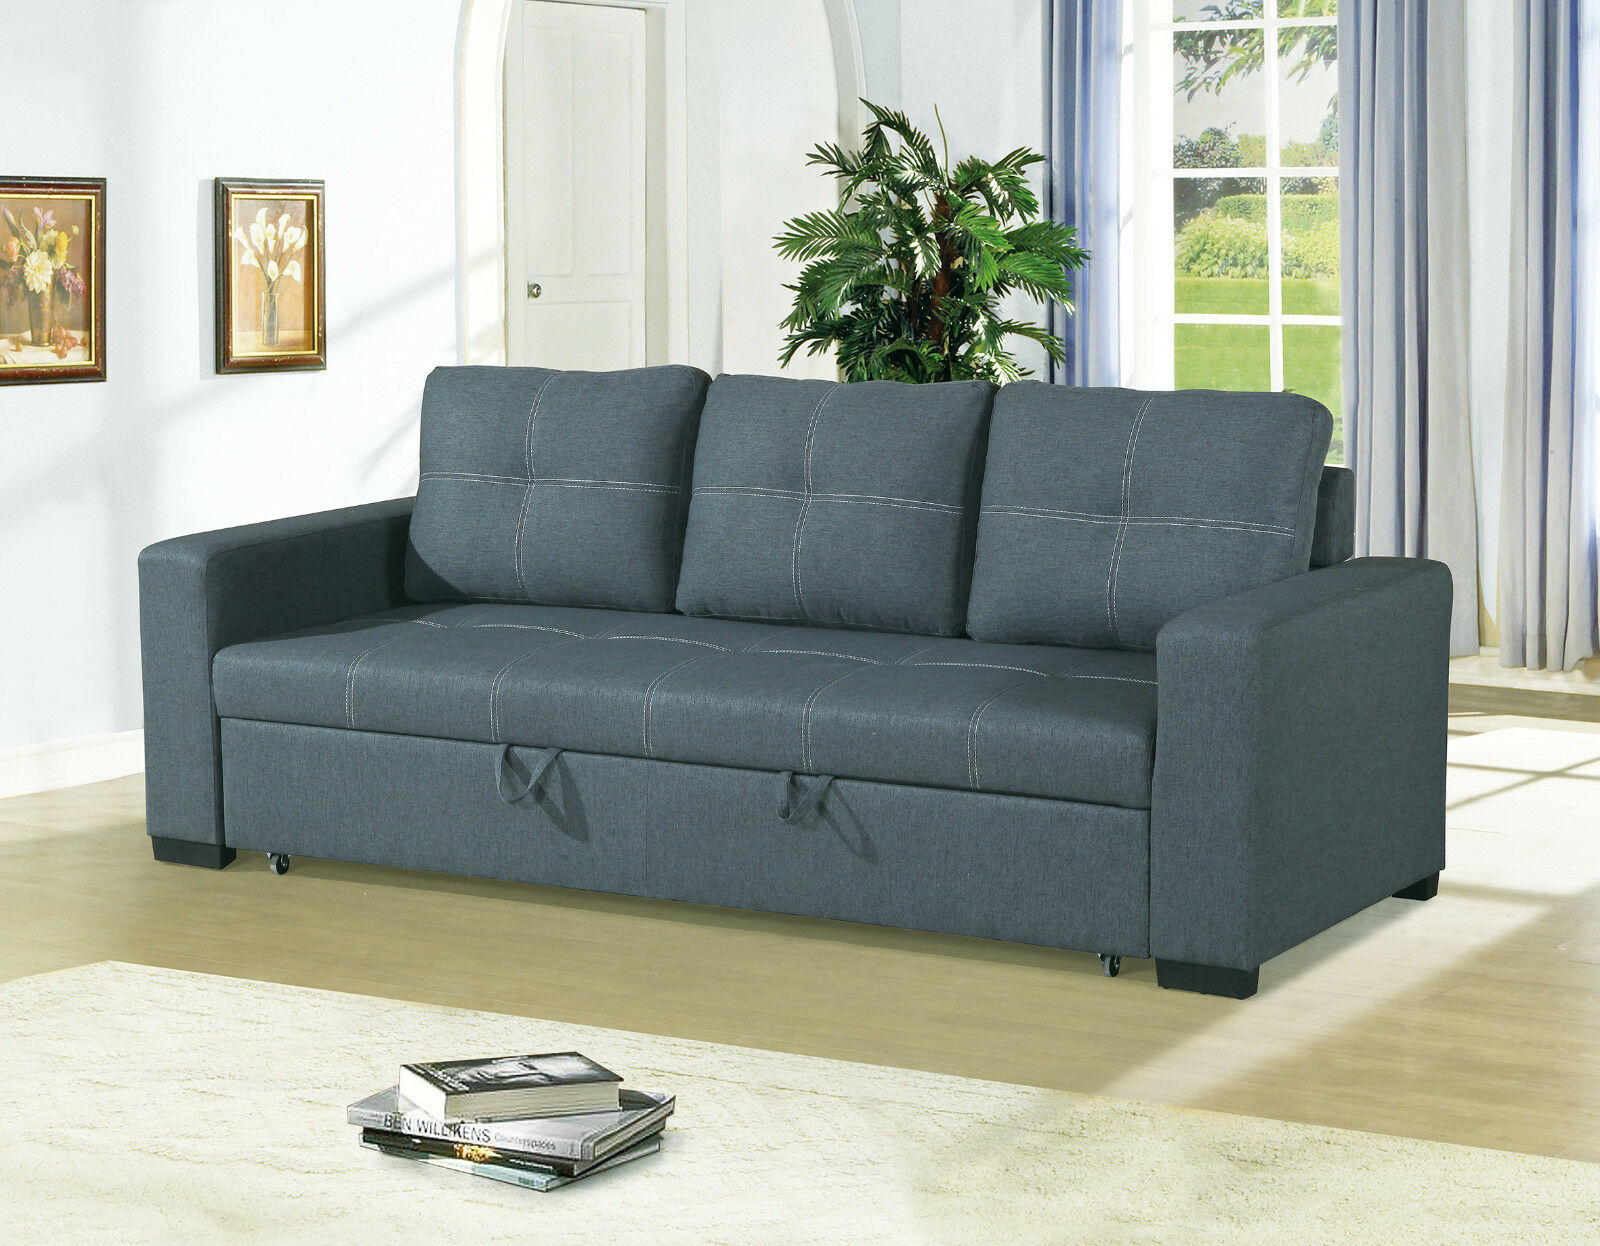 Fabric Sofa 3 Seater Armless Couch Bed